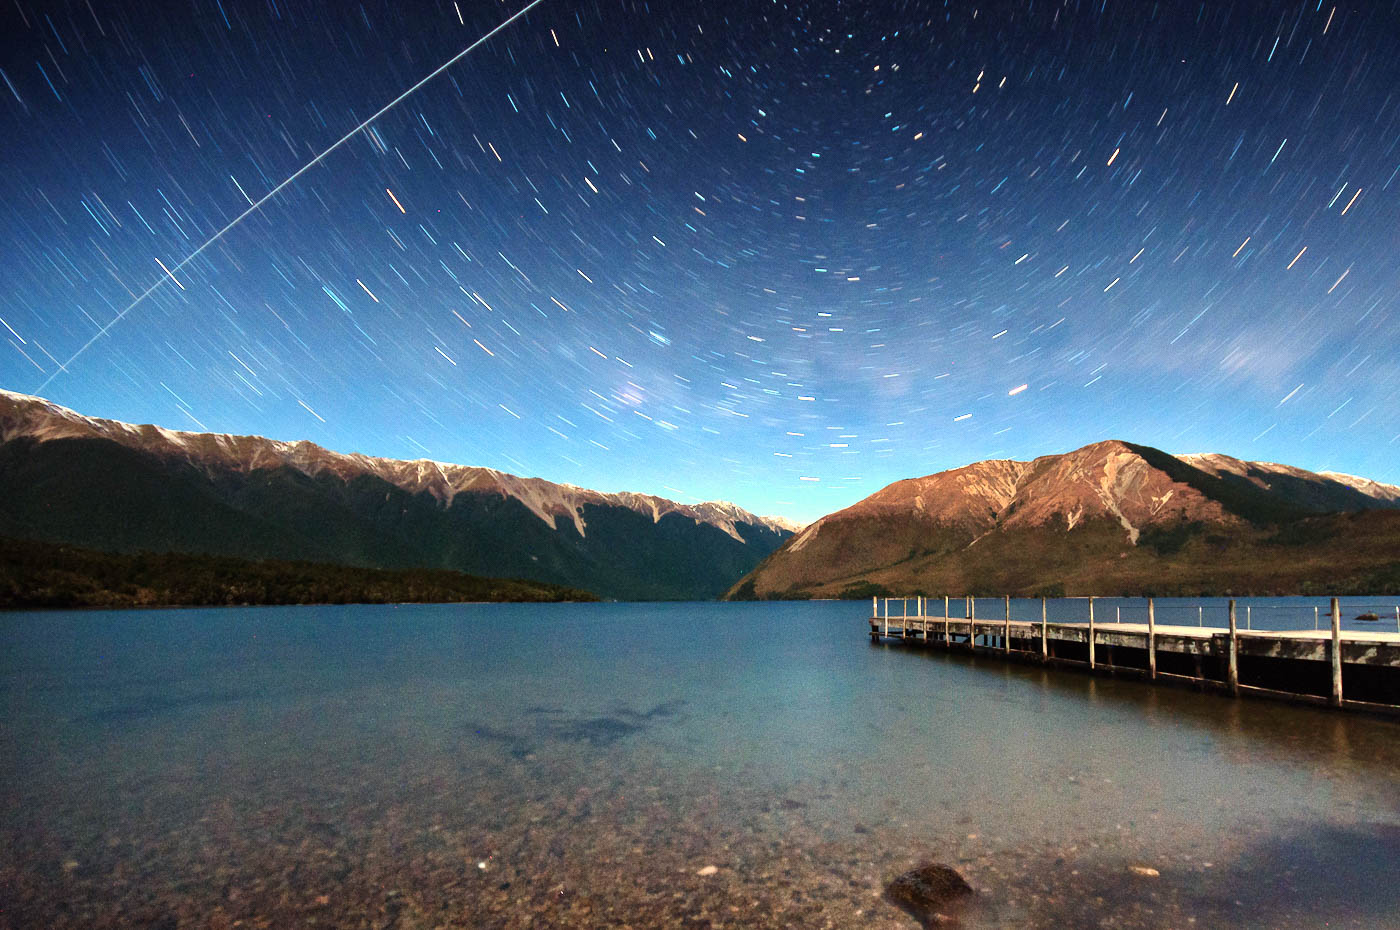 The International Space Station in a star trail over Lake Rotoiti, New Zealand.